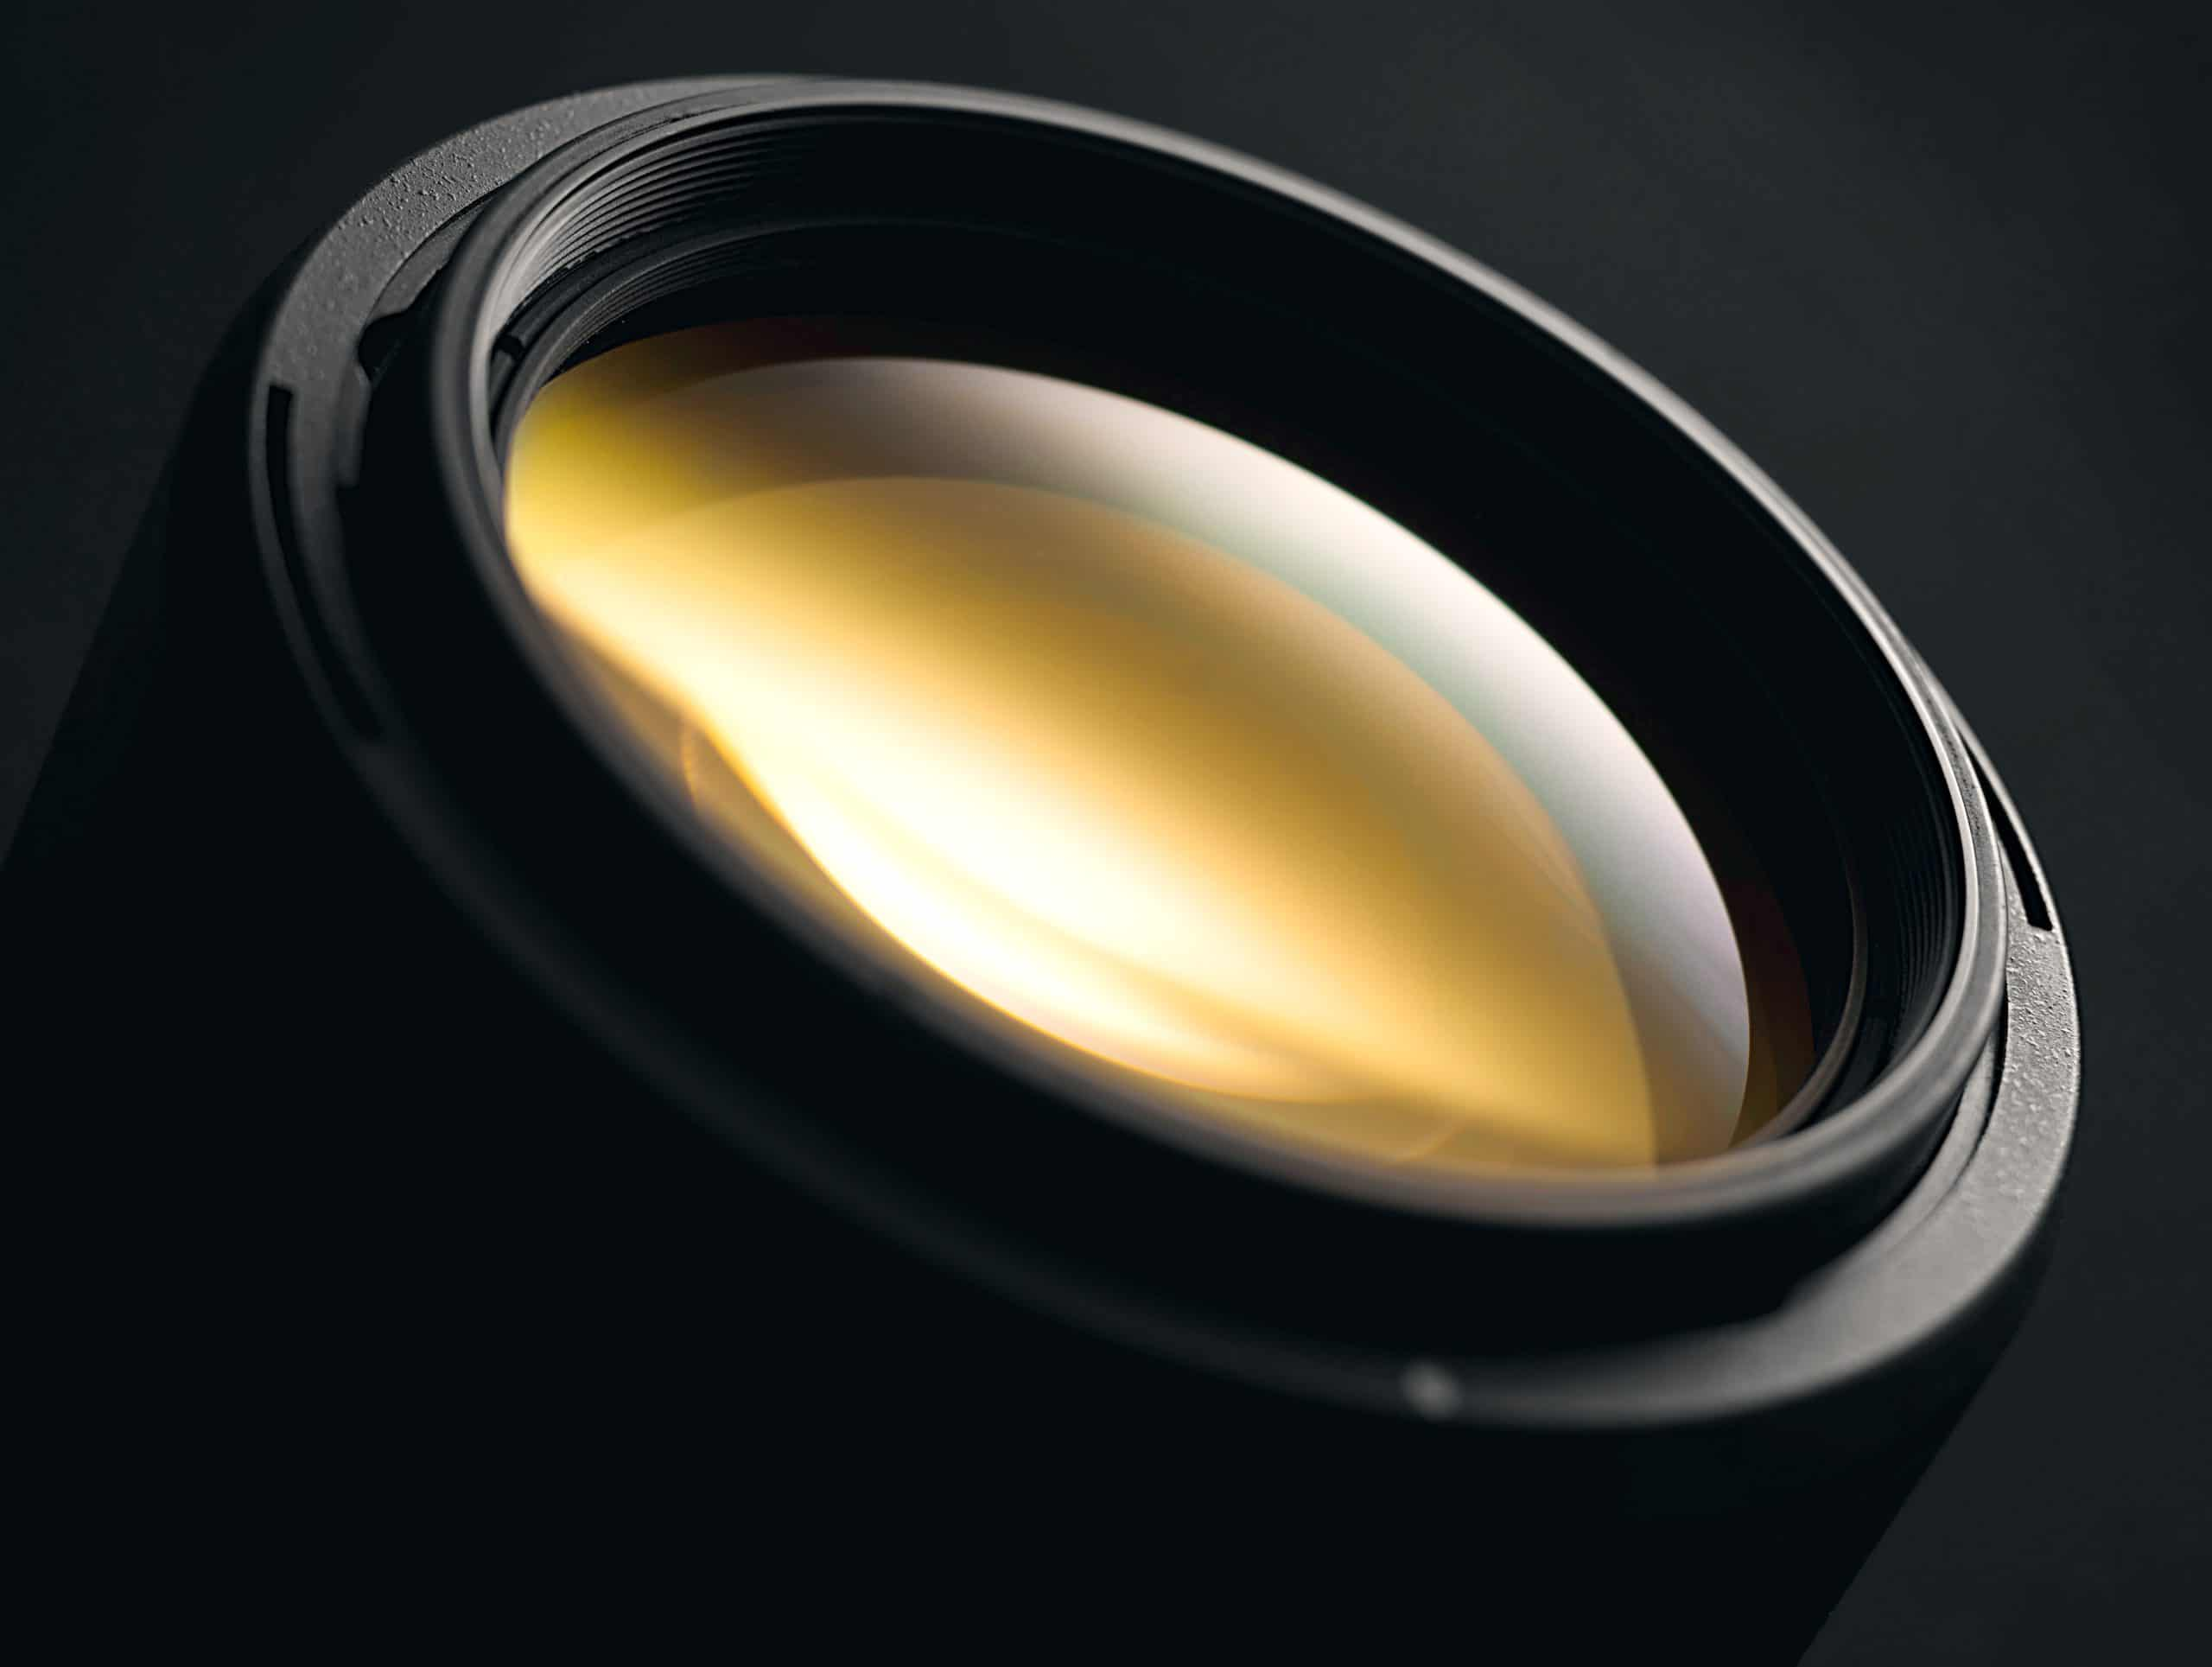 Meaning Of Barlow Lens And Factors To Consider